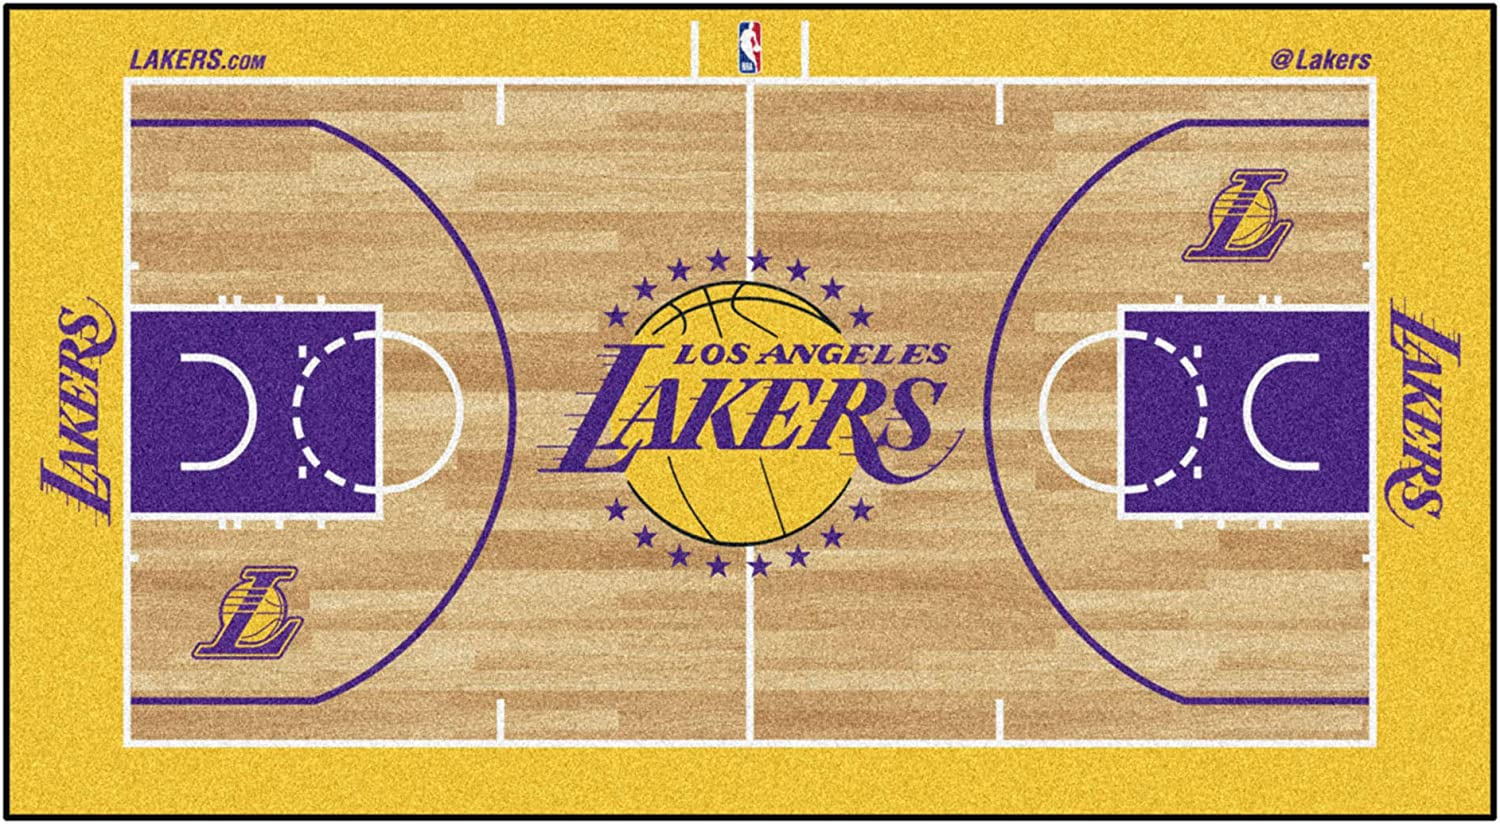 FANMATS NBA Unisex-Adult Court Runner Ranking Large discharge sale TOP2